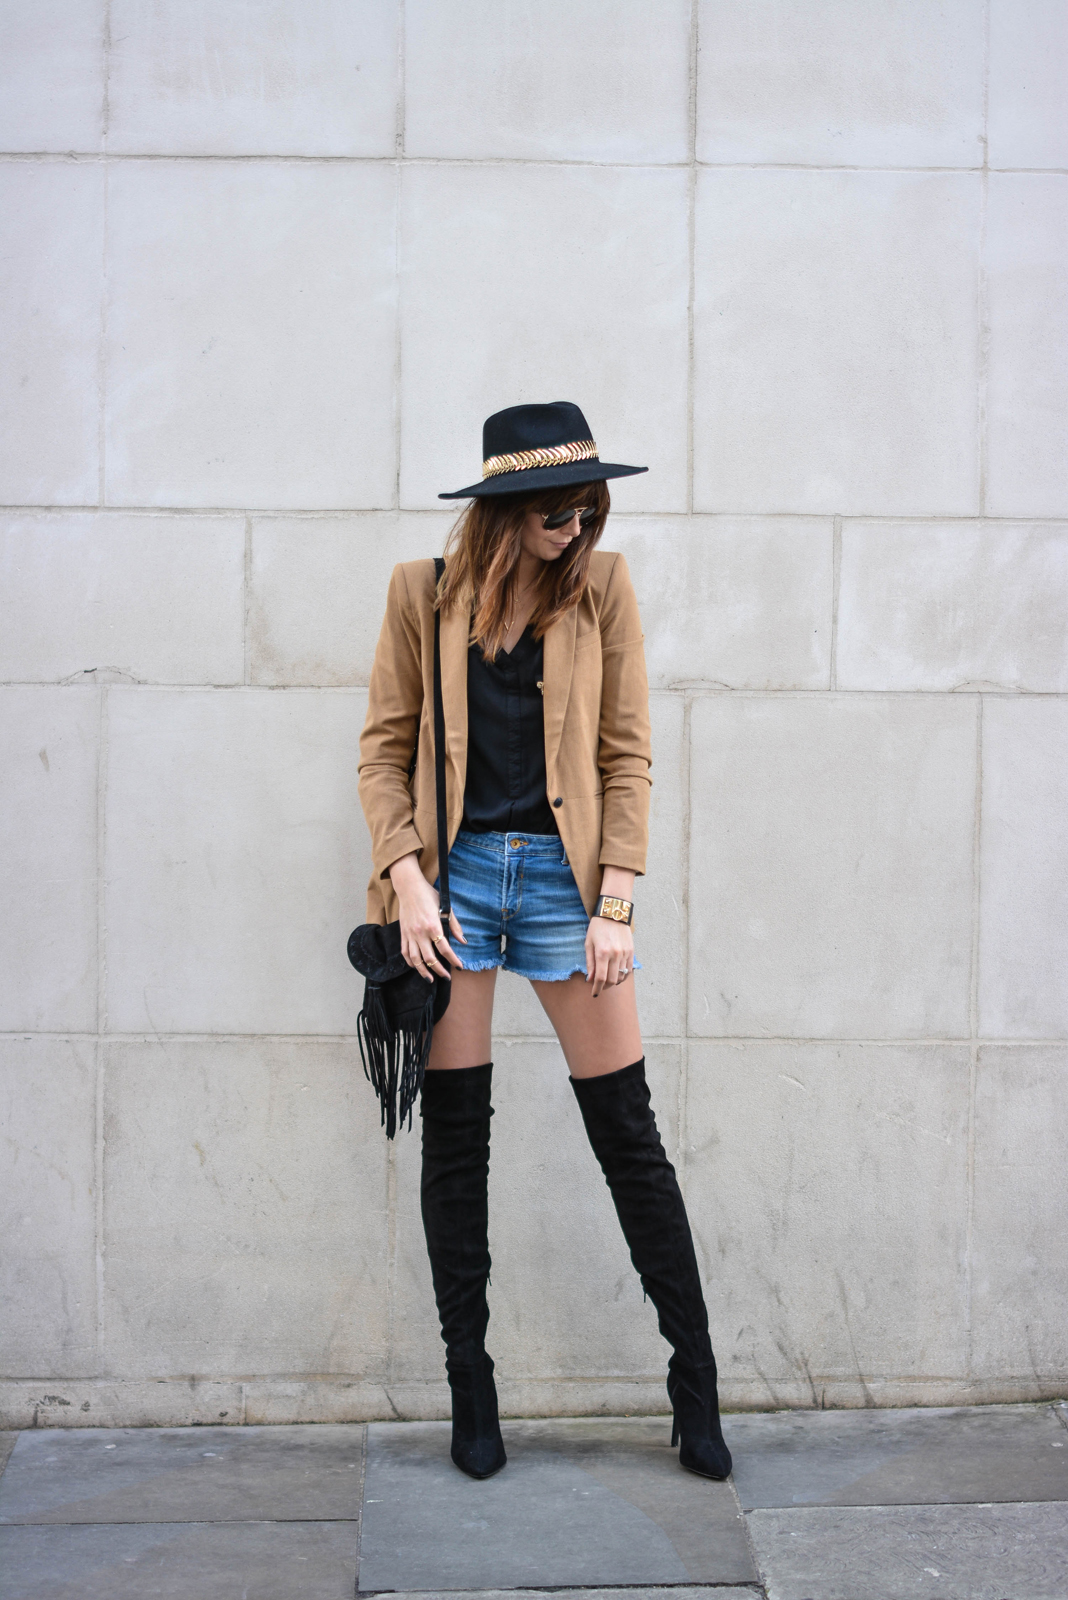 EJSTYLE - Emma Hill wearing Camel blazer, black shirt, black suede thigh high OTK boots, Fedora hat, denim shorts, black suede fringe tassel bag, collier de chien cuff bracelet, aviator sunglasses, OOTD